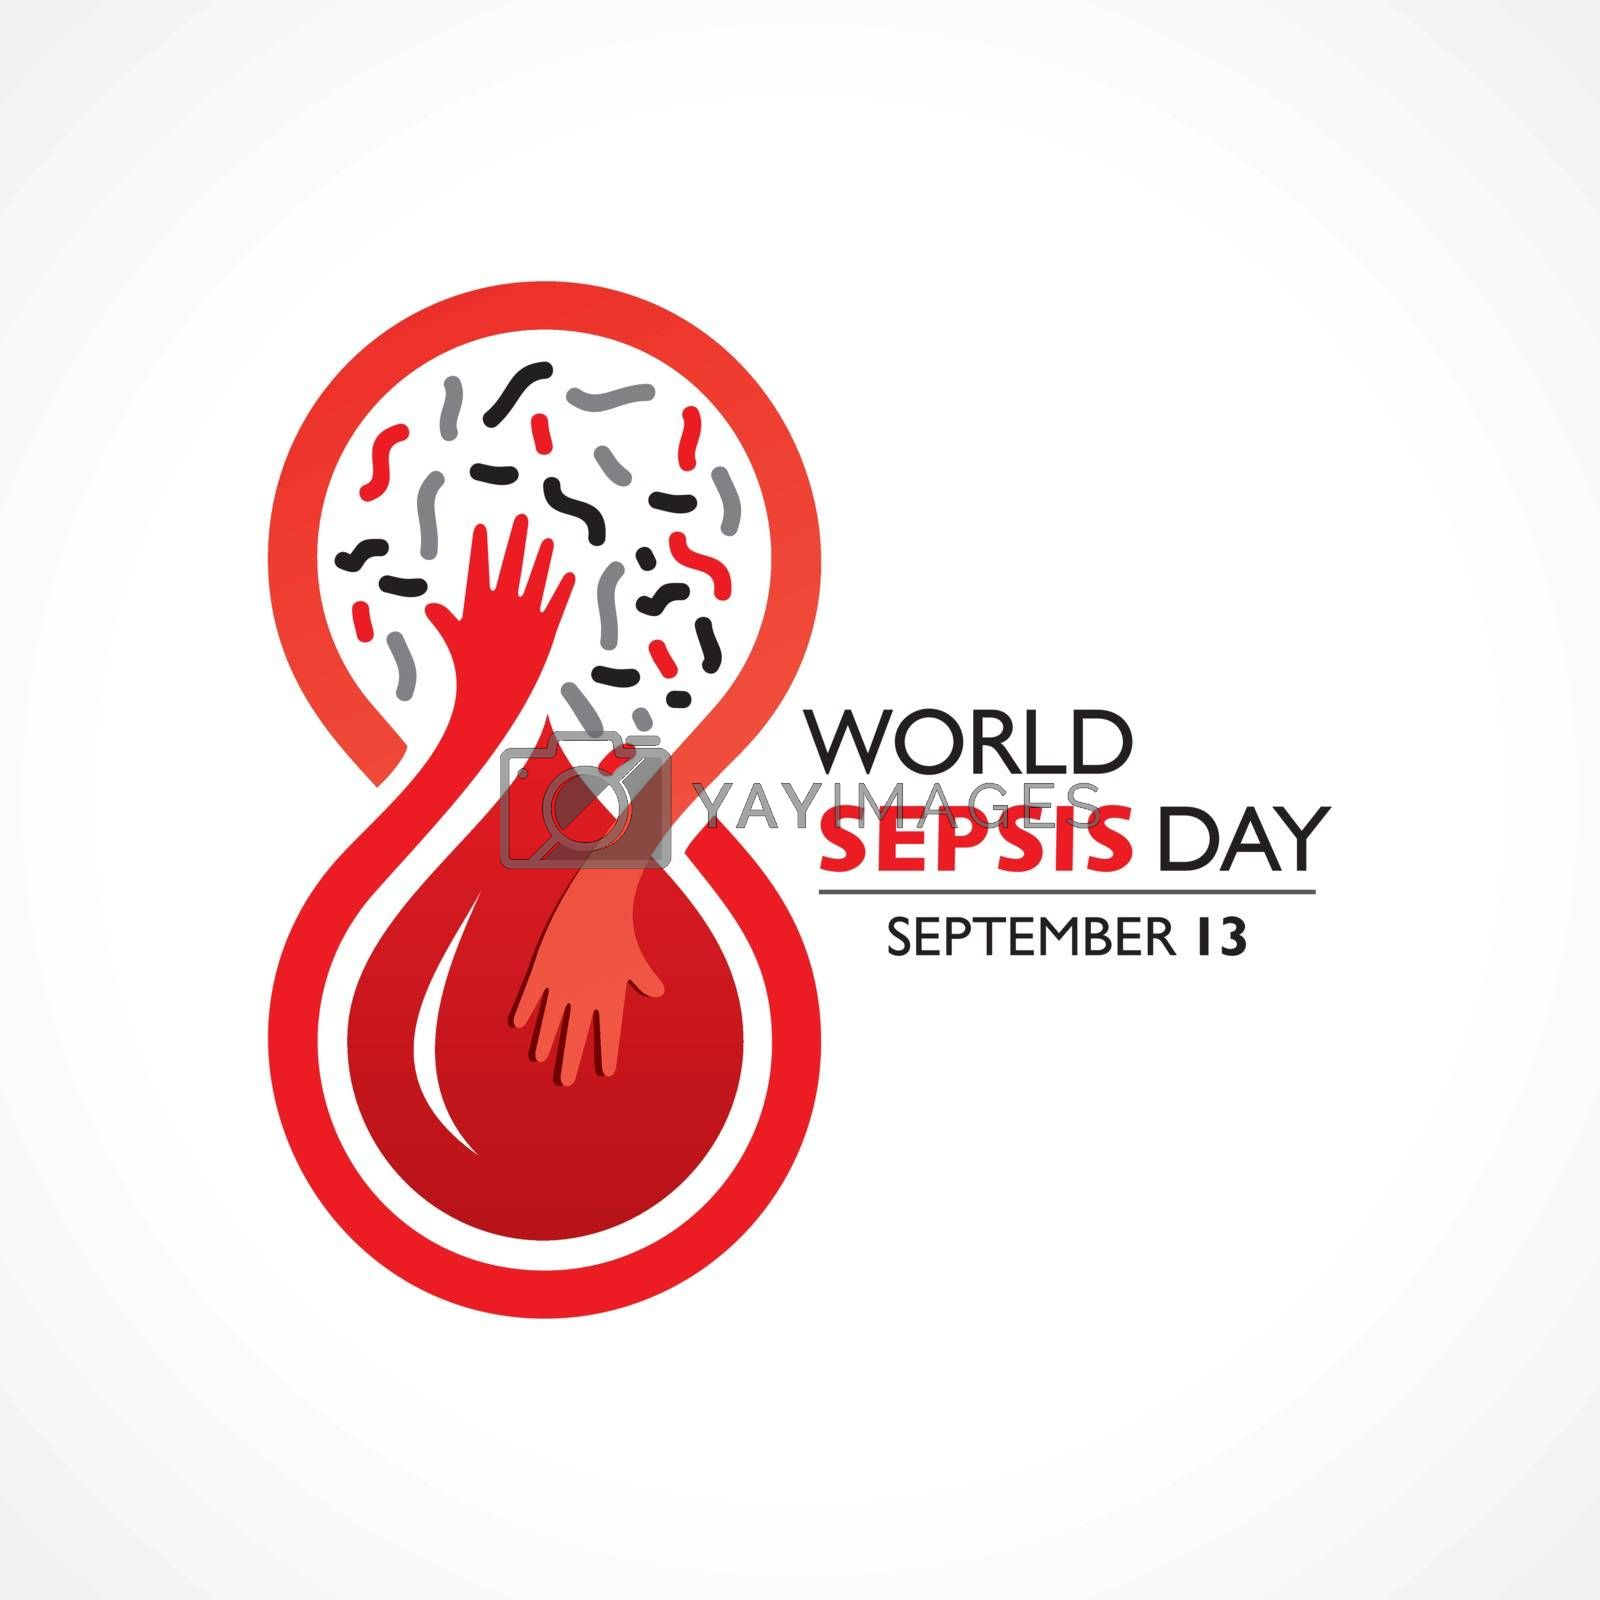 Vector illustration of World Sepsis Day observed on September 13th